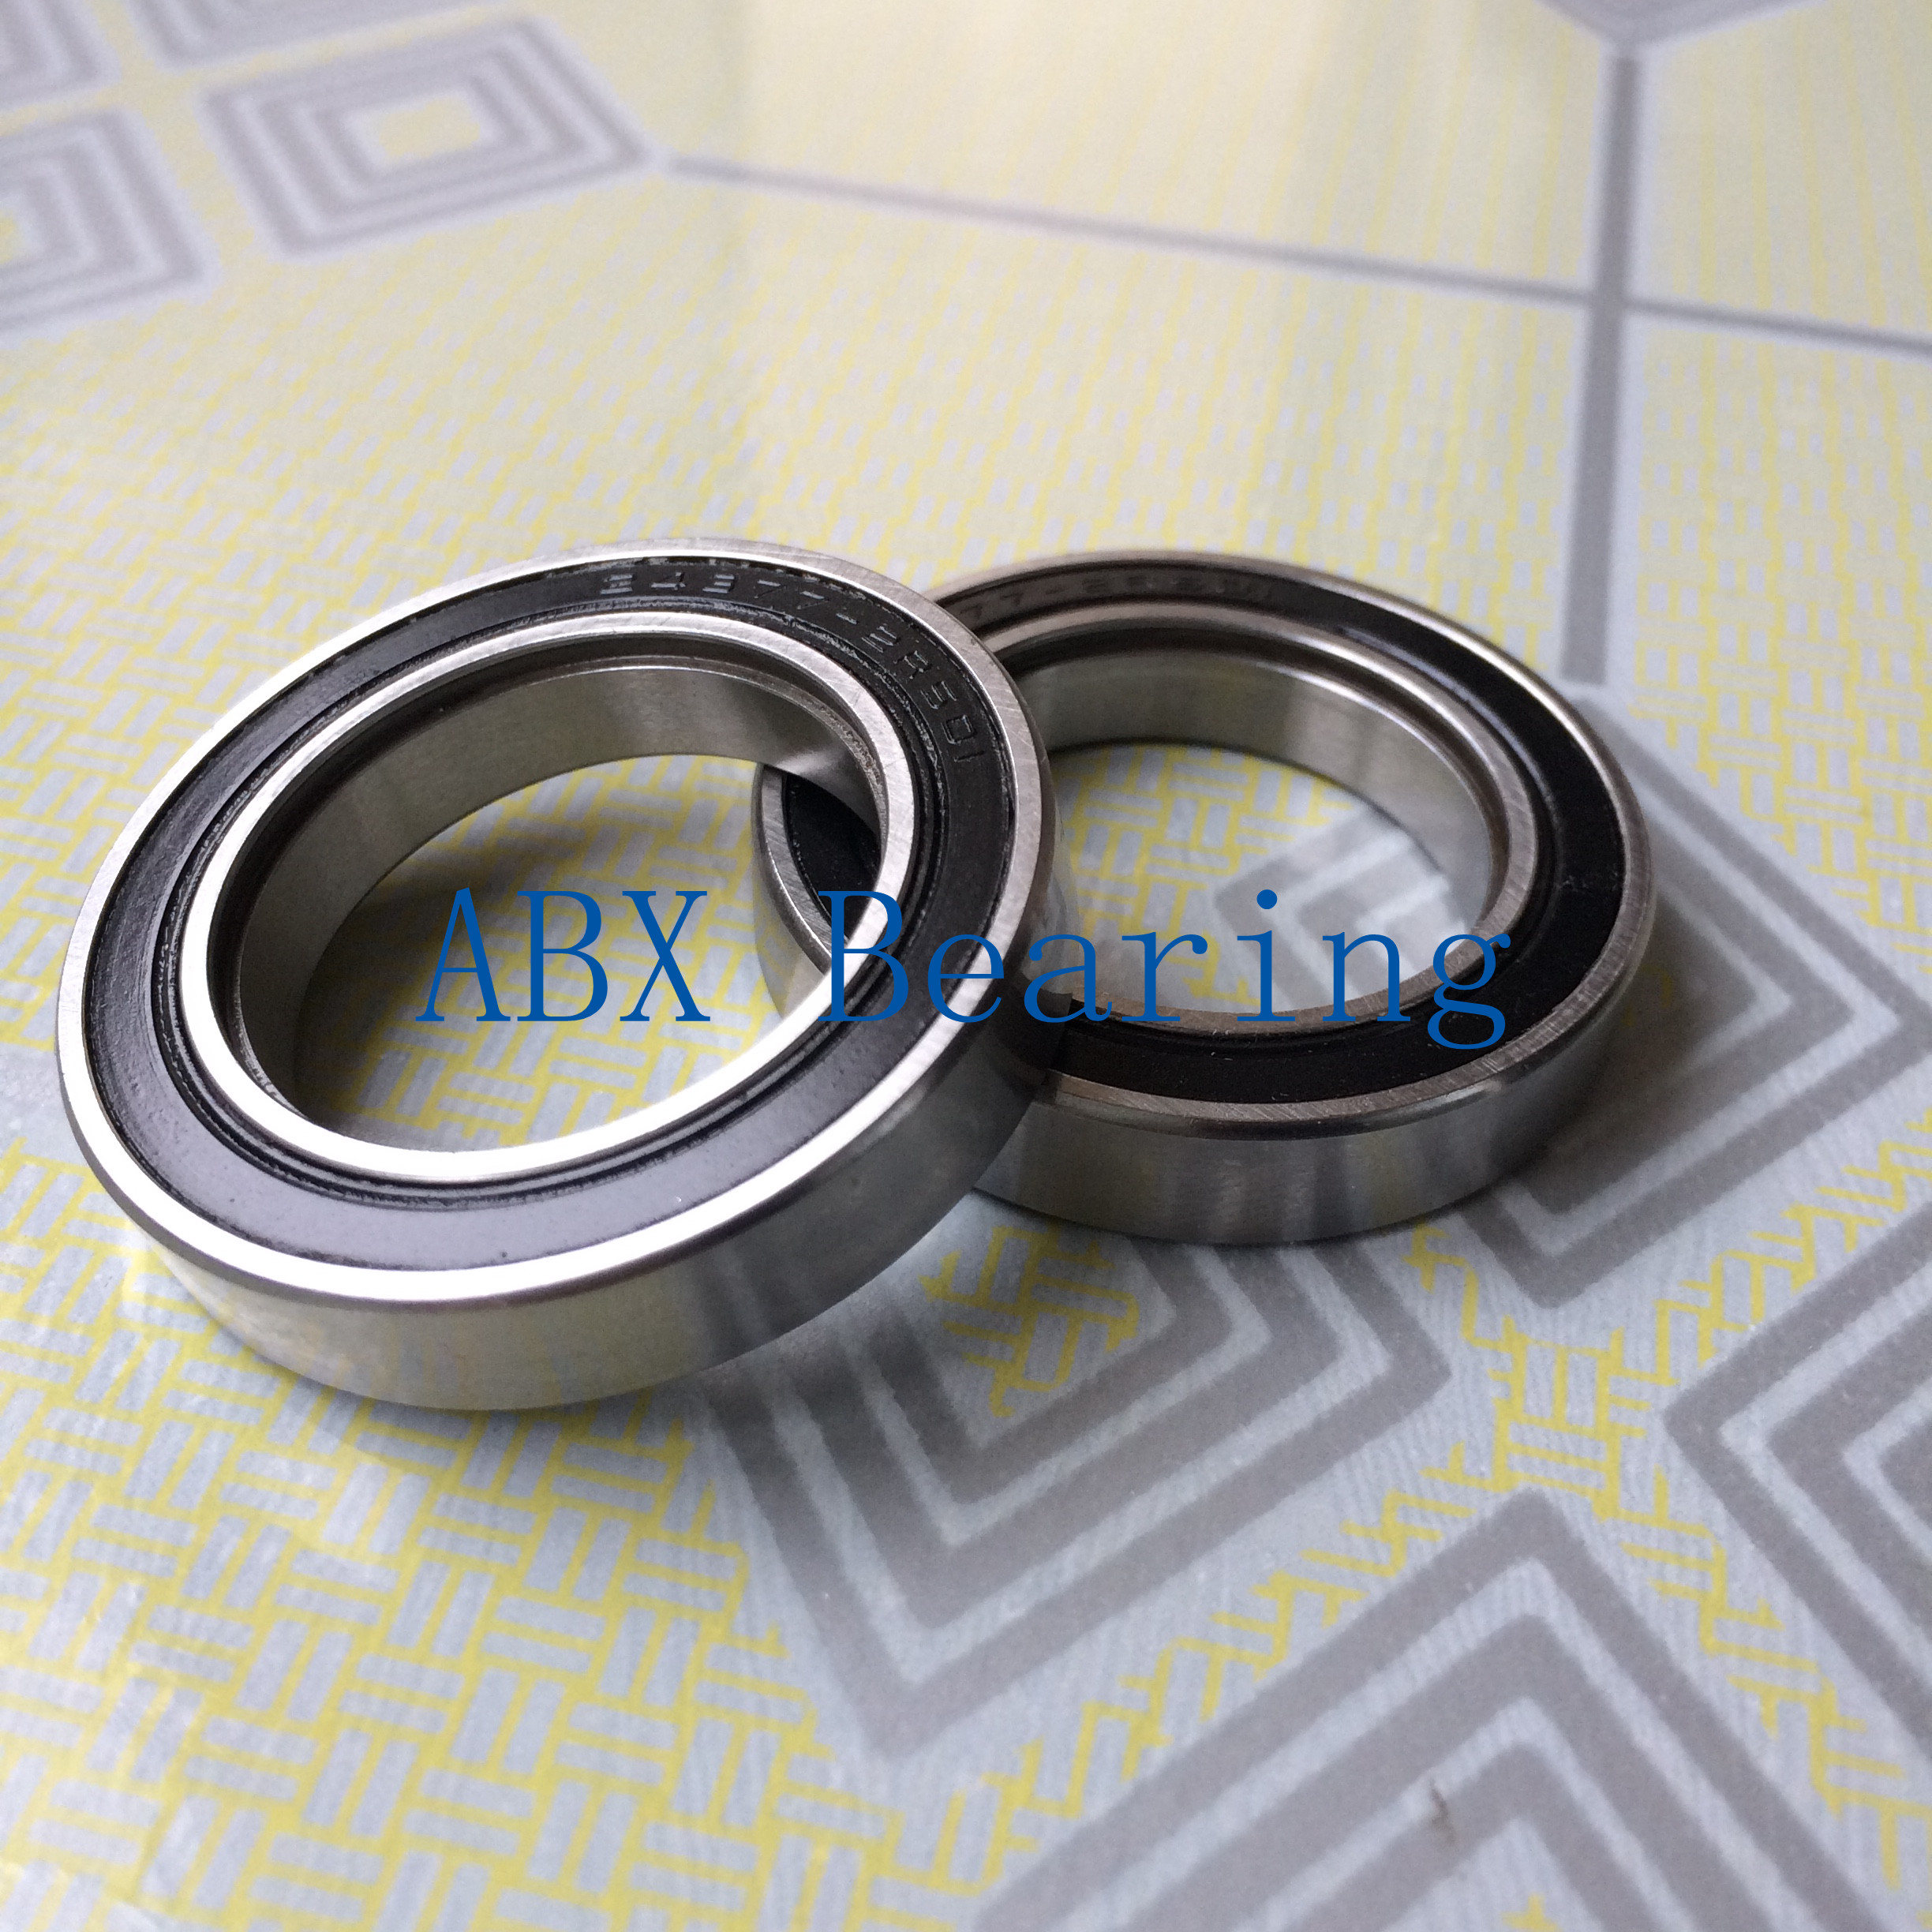 24377-2RS01 Bike axial bearing non-standard MR2437 6805 2RS MR24377LLU 24377 24 * 37 * 7 with groove in inner ring for FSA MS185 na4910 heavy duty needle roller bearing entity needle bearing with inner ring 4524910 size 50 72 22